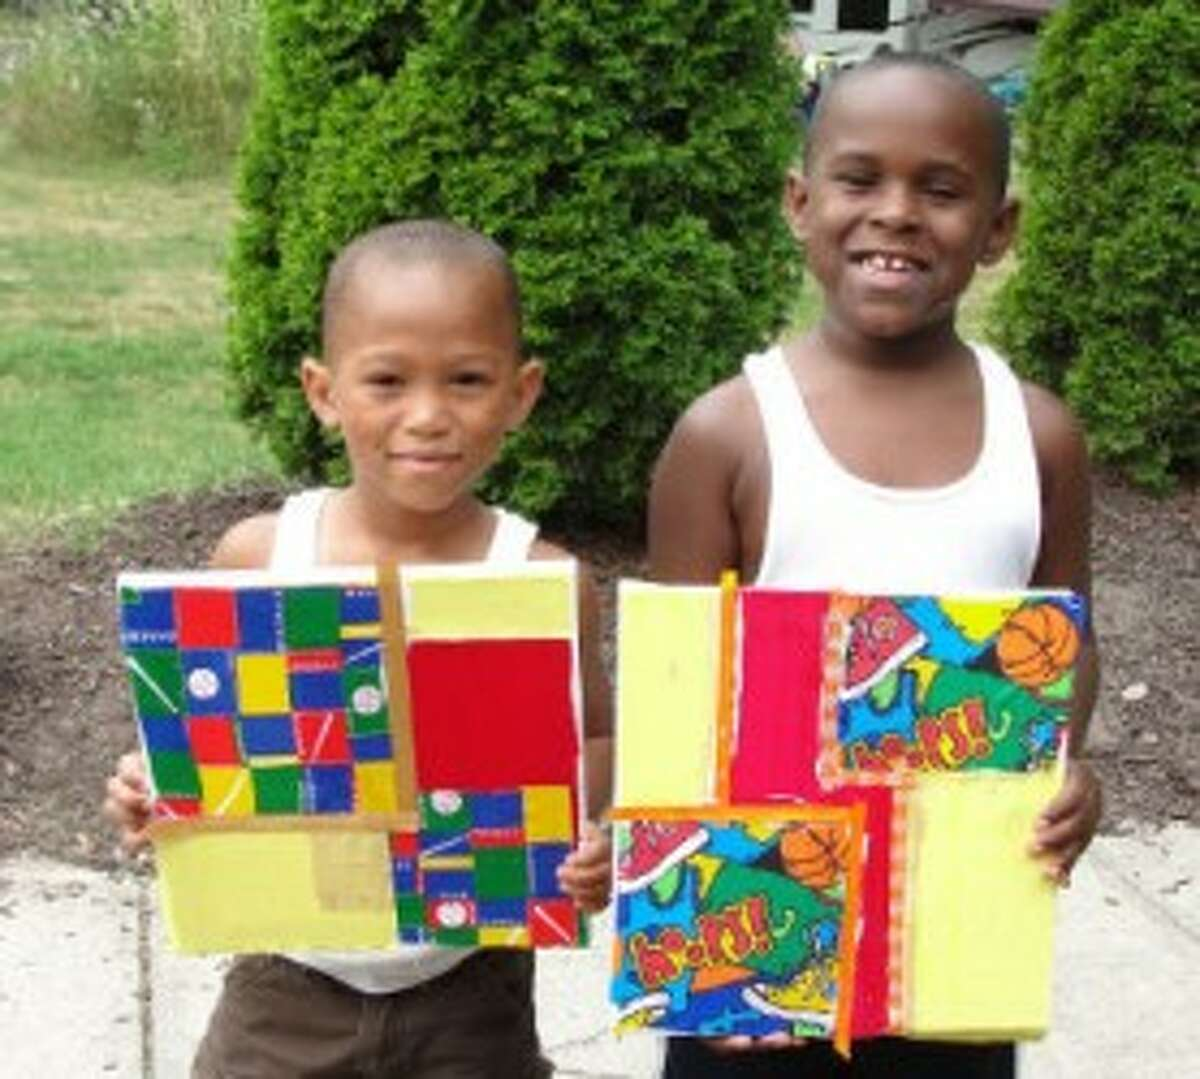 NO. 1: Brothers Marcellus, 5, and Mariano, 6, proudly display their sports themed collages.